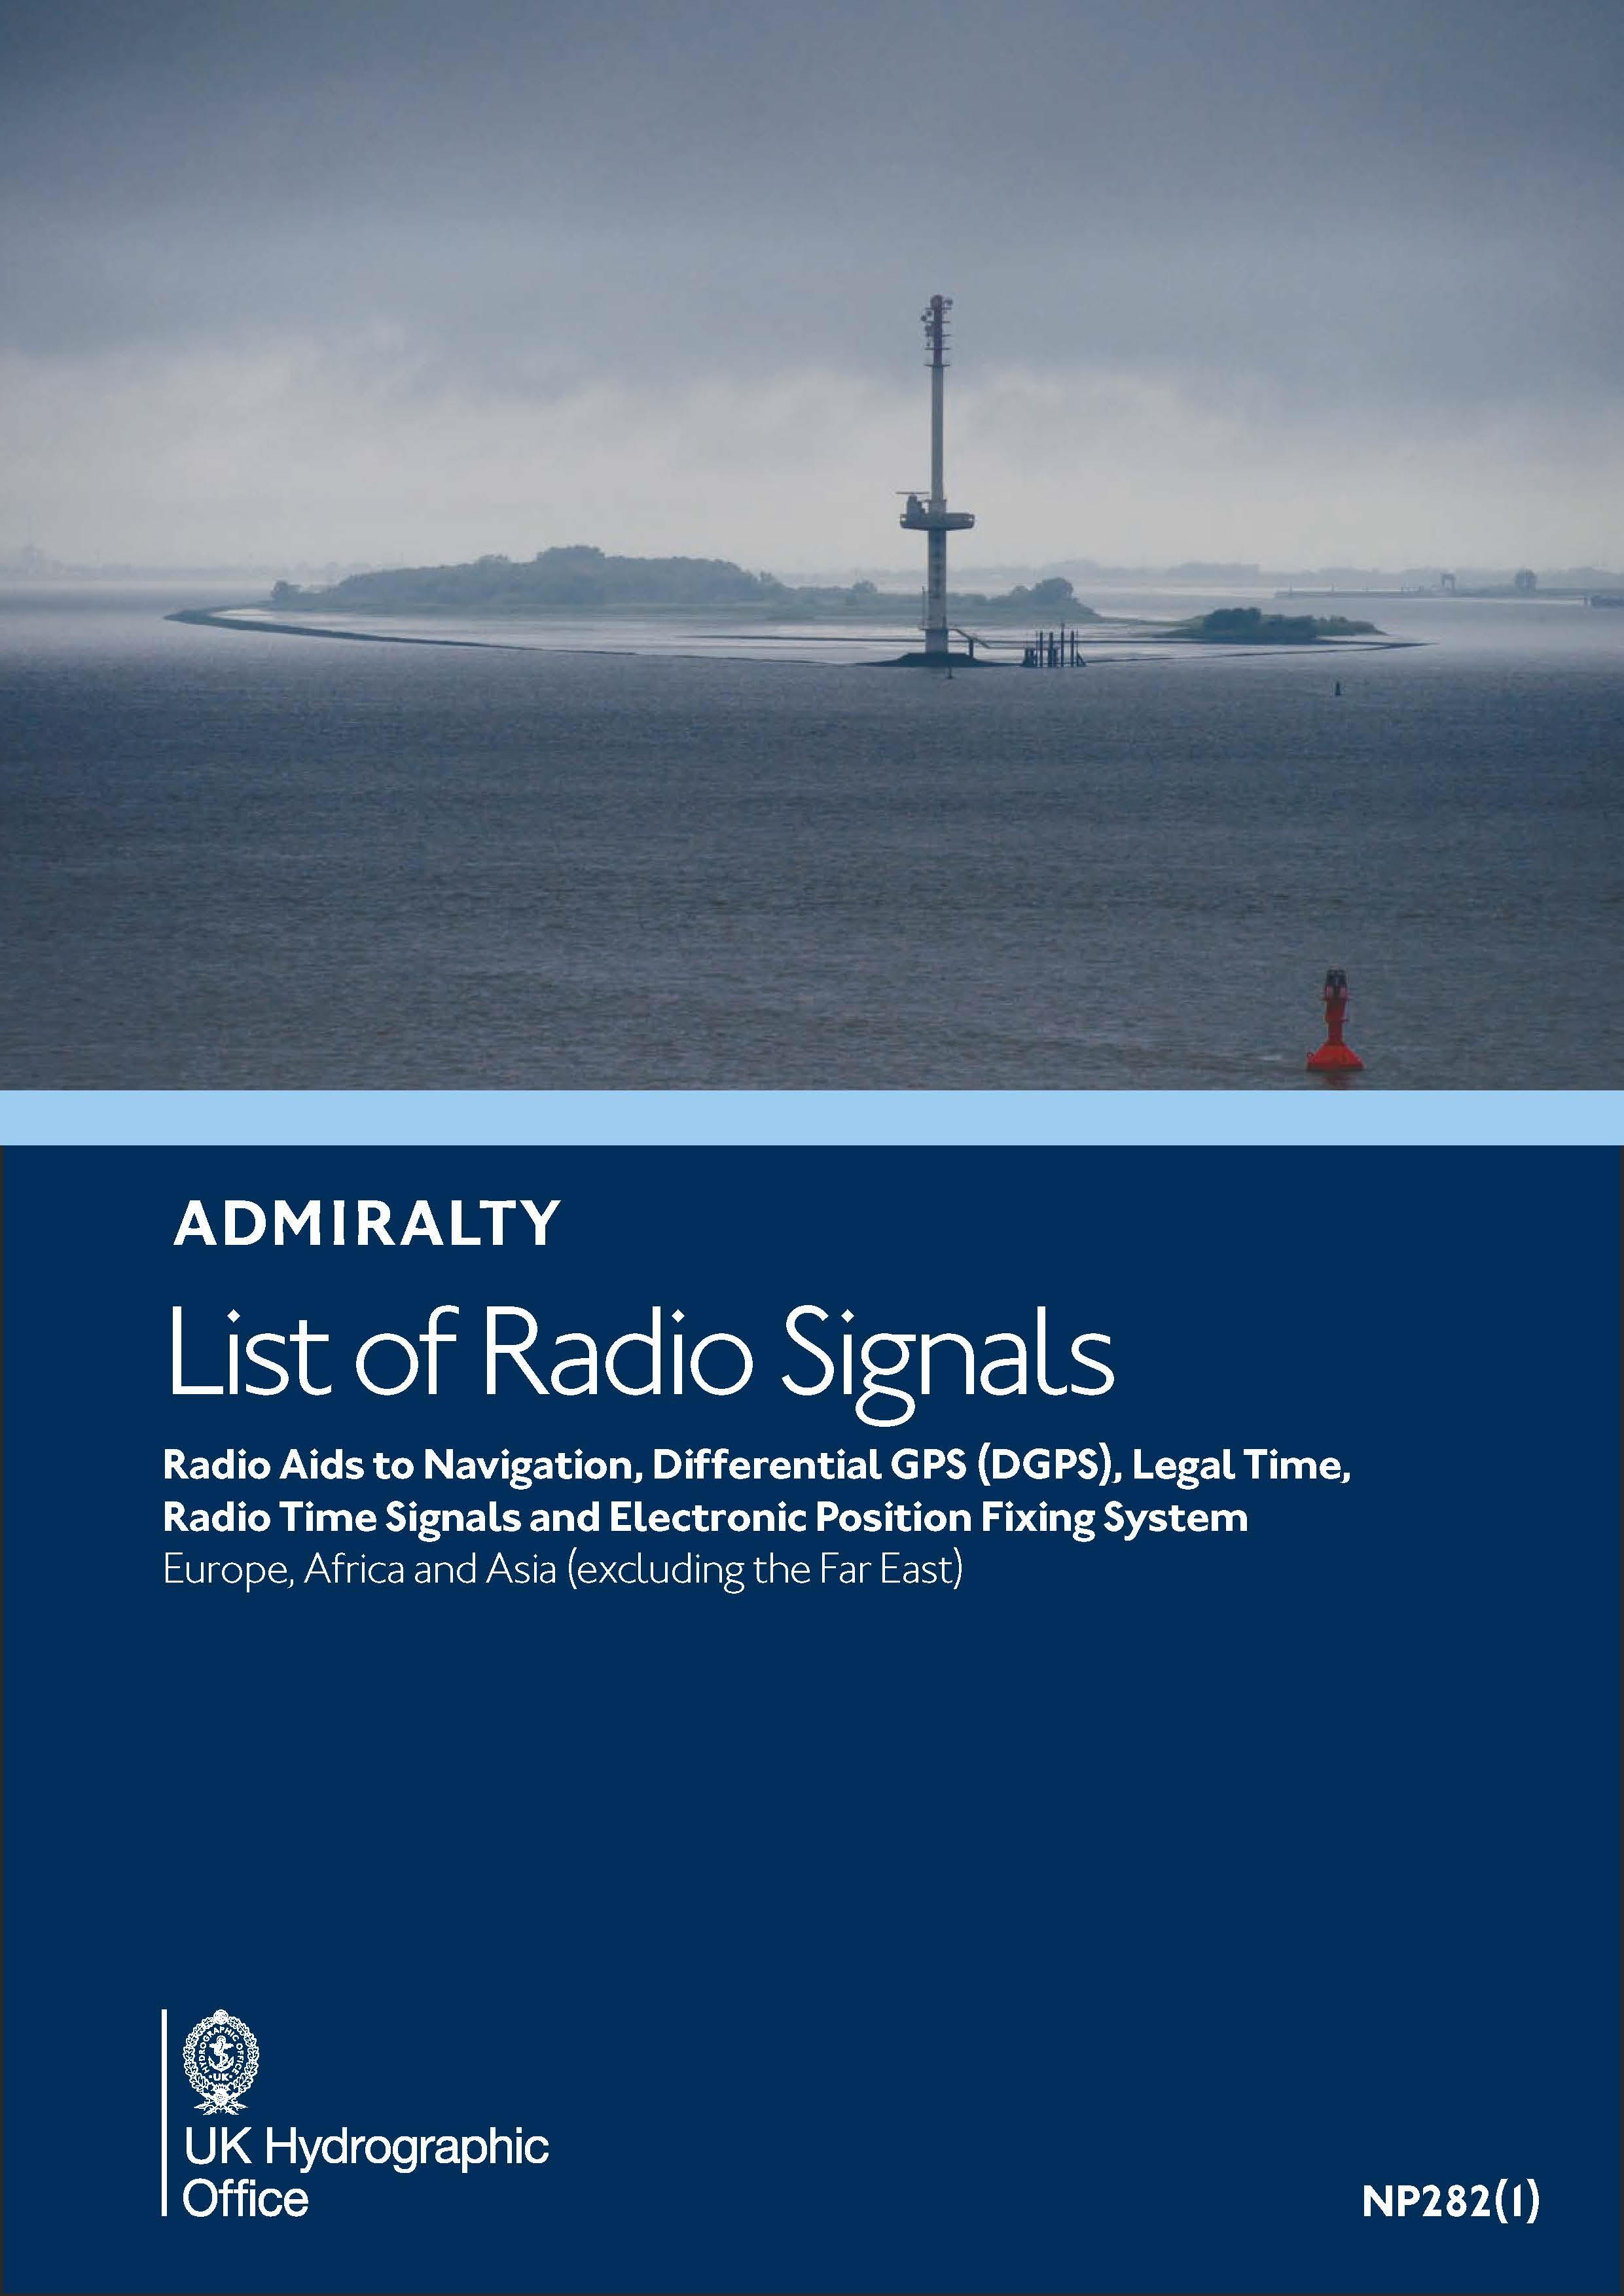 ADMIRALTY NP282(1) RadioSignals Position Fixing Systems & Time Signals - EMEA